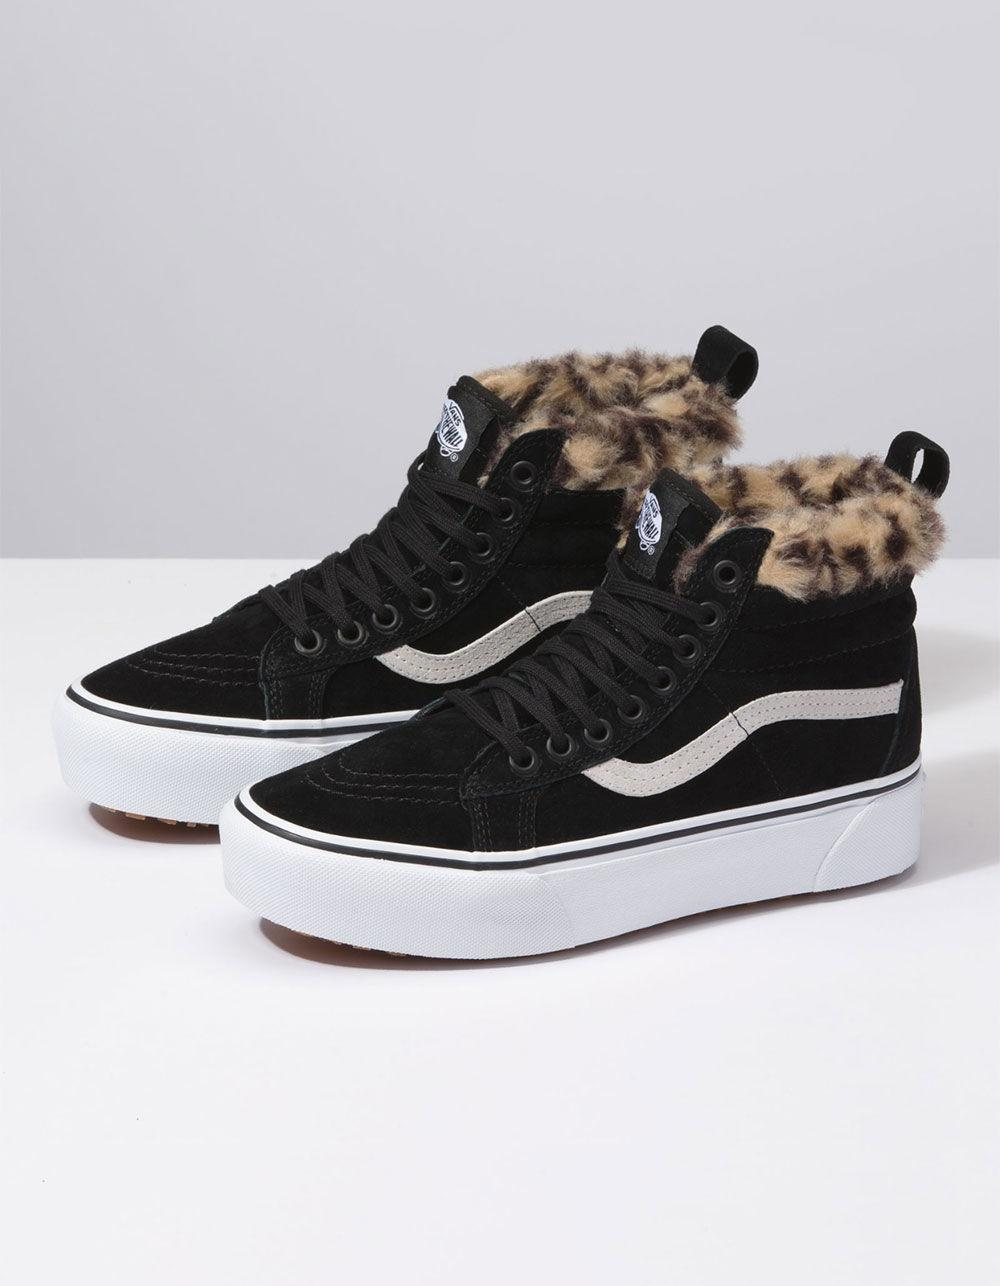 6fd64ca625f Lyst - Vans Sk8-hi Platform Mte Black   Leopard Fur Womens Shoes in Black -  Save 19%